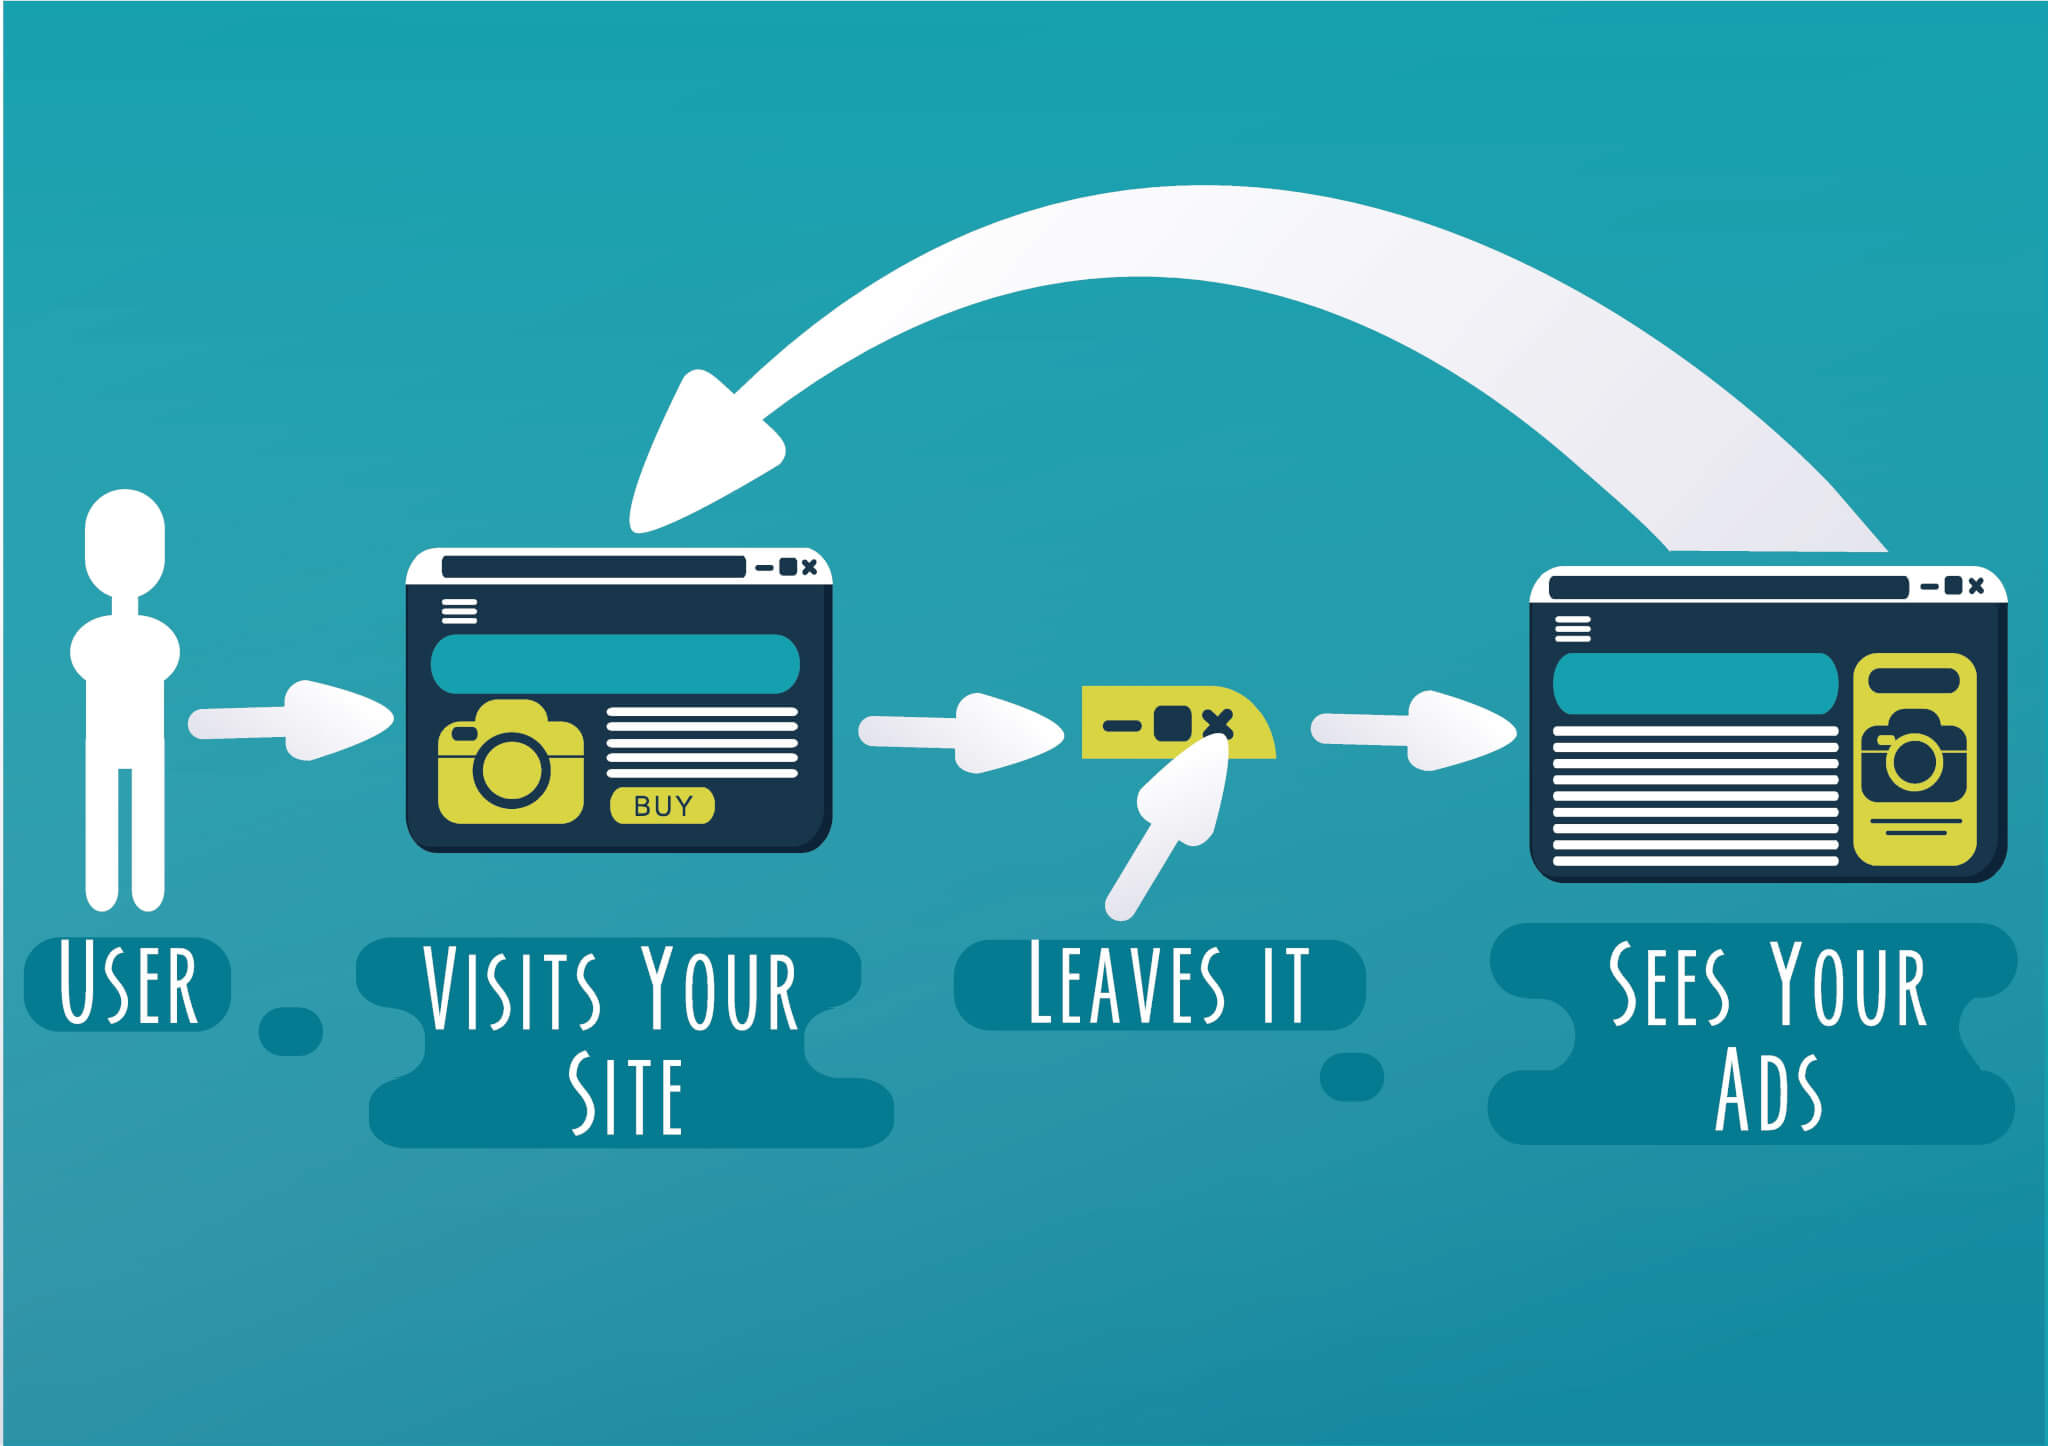 remarketing process in illustrated form